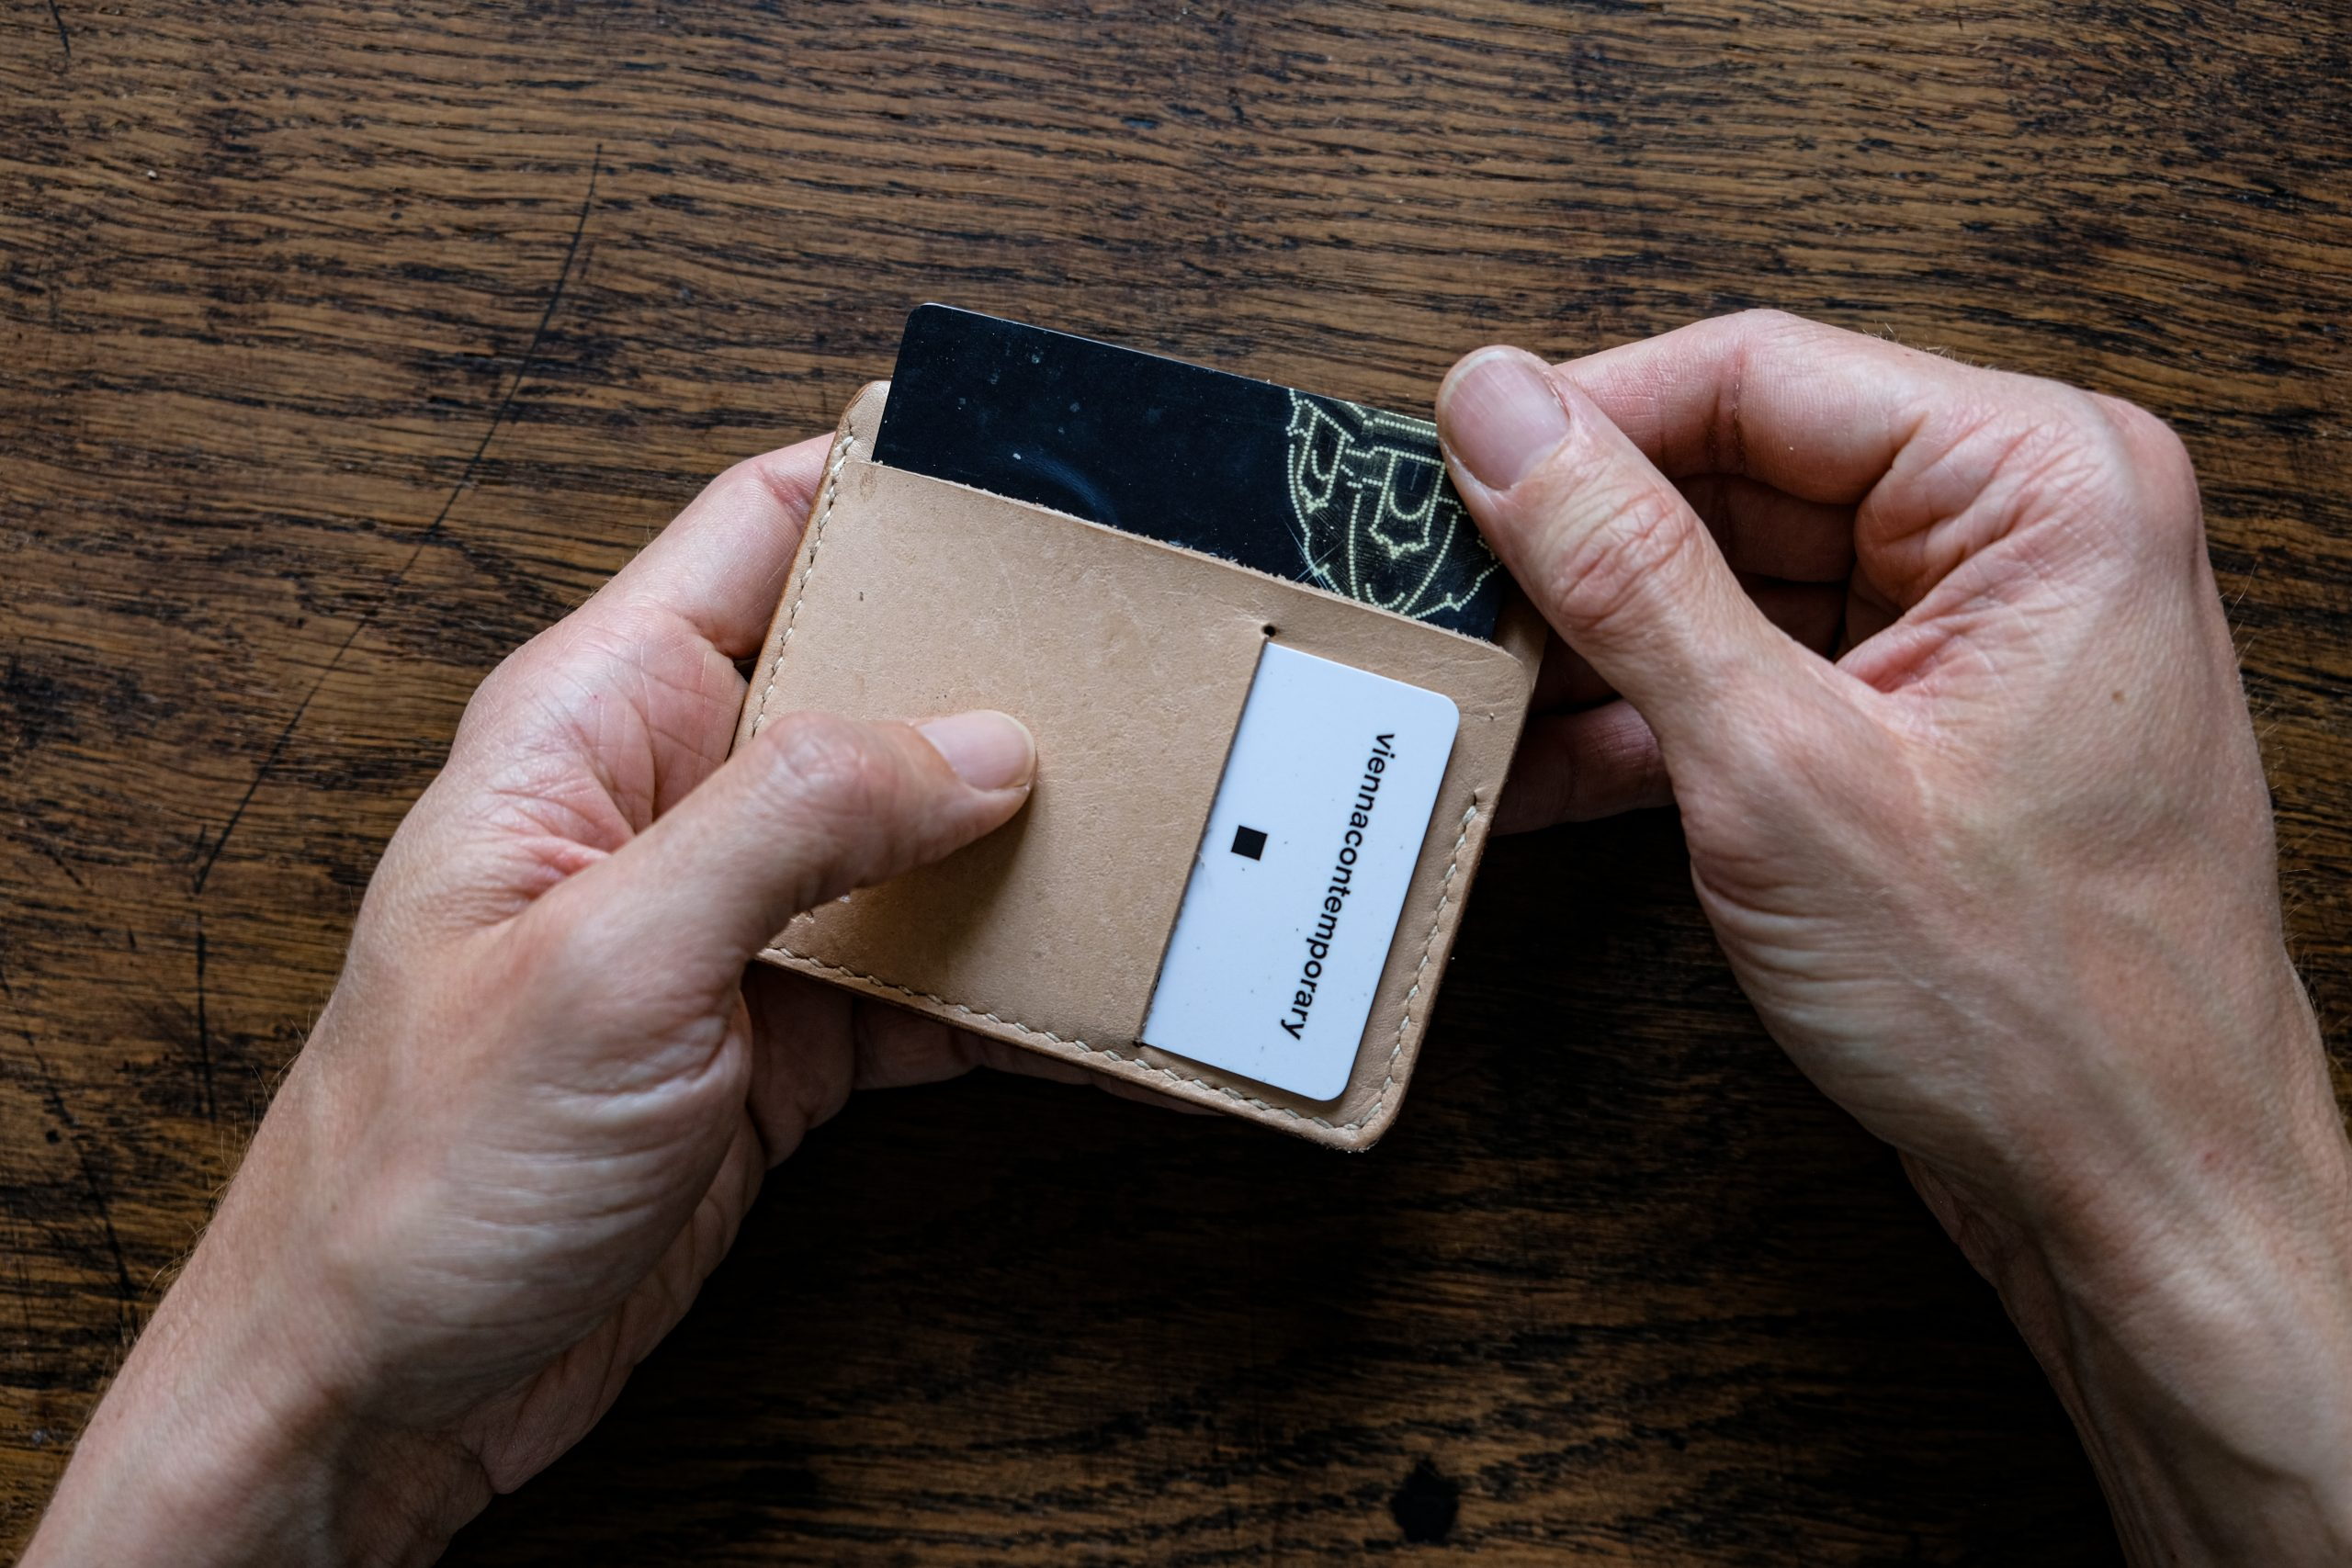 lerif designs Vale leather wallet in natural hands demo on wood background